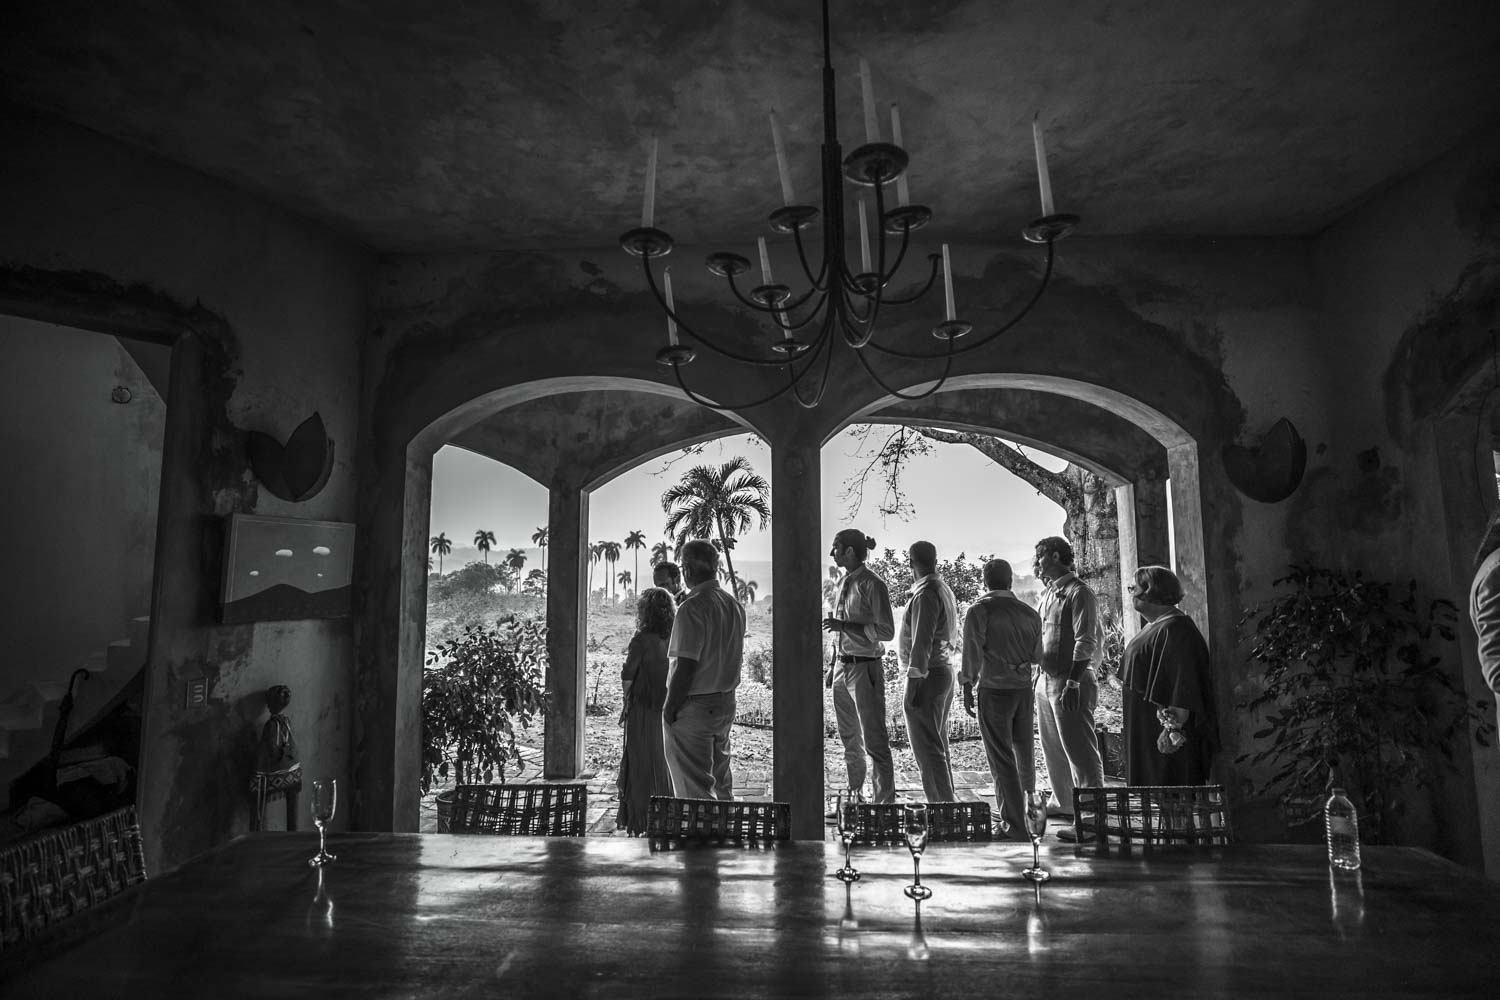 Wedding party stands in arched openings waiting to walk into ceremony at Castle Club in Cabarete Dominican Republic